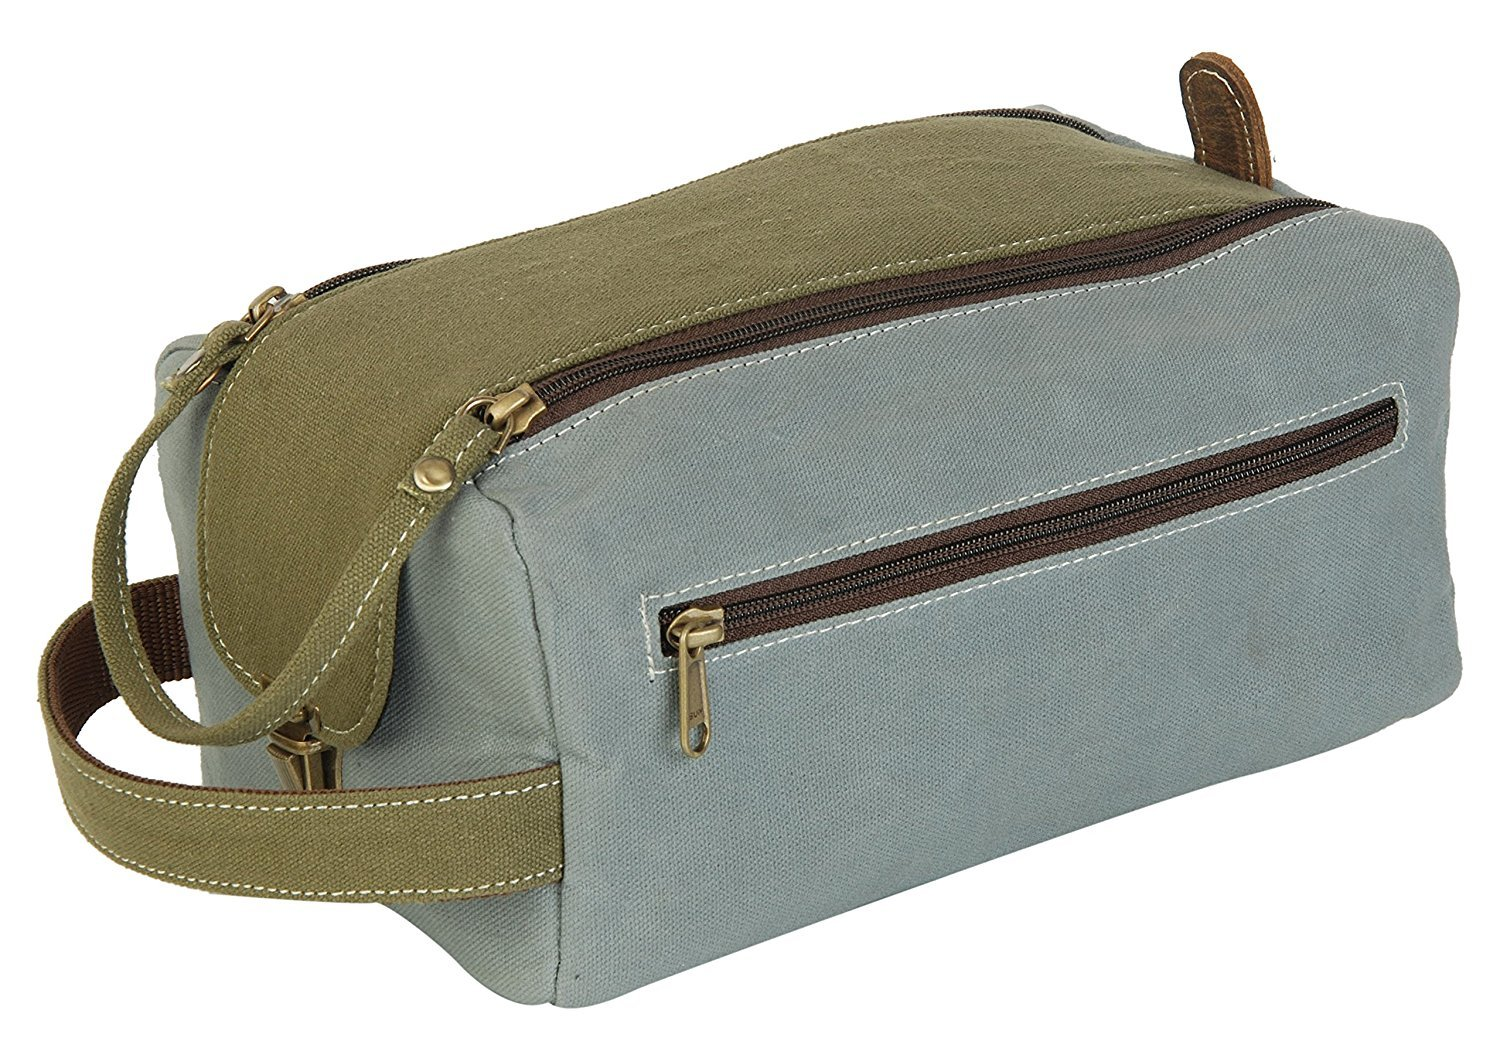 1a1ddbc51a Get Quotations · Dopp Shaving kit Waxed canvas   bufflo hunter leather  cosmetic makeup bag